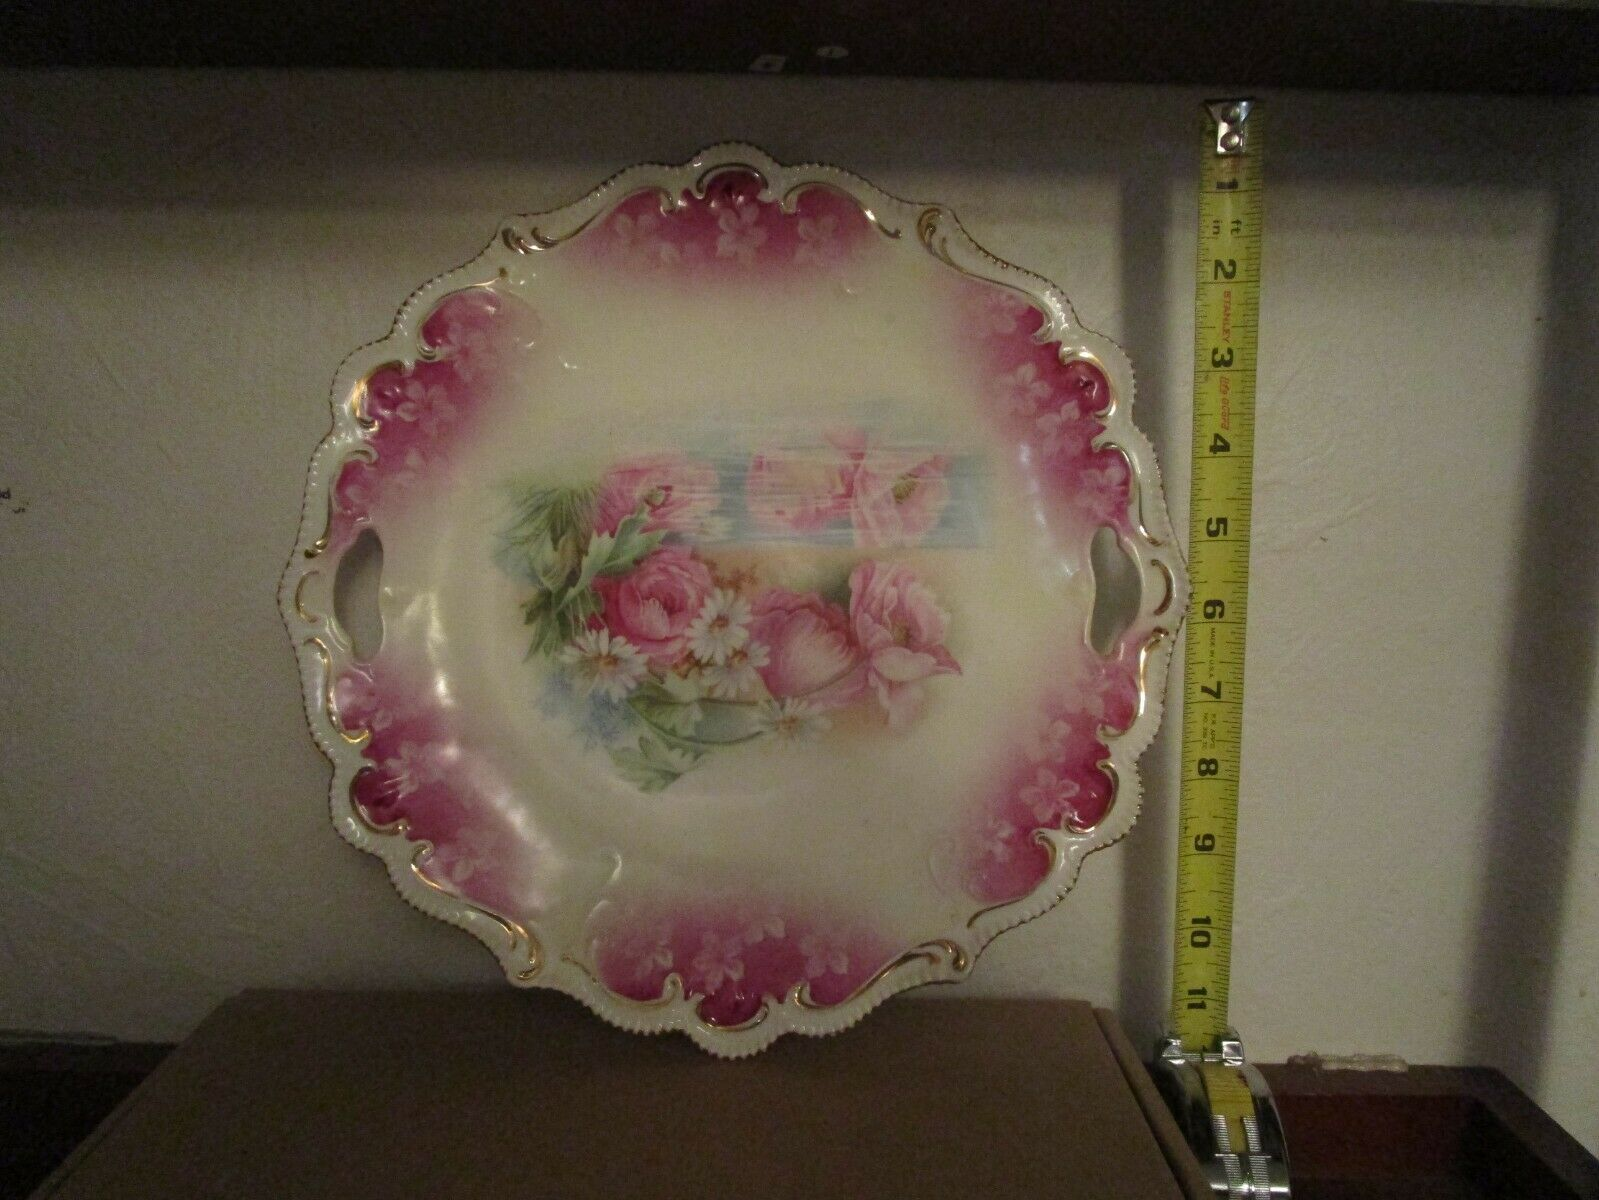 RS PRUSSIA Cake Plate 529 10 -Deep Rose W/ Unique Short Gold Swirls - $100.00